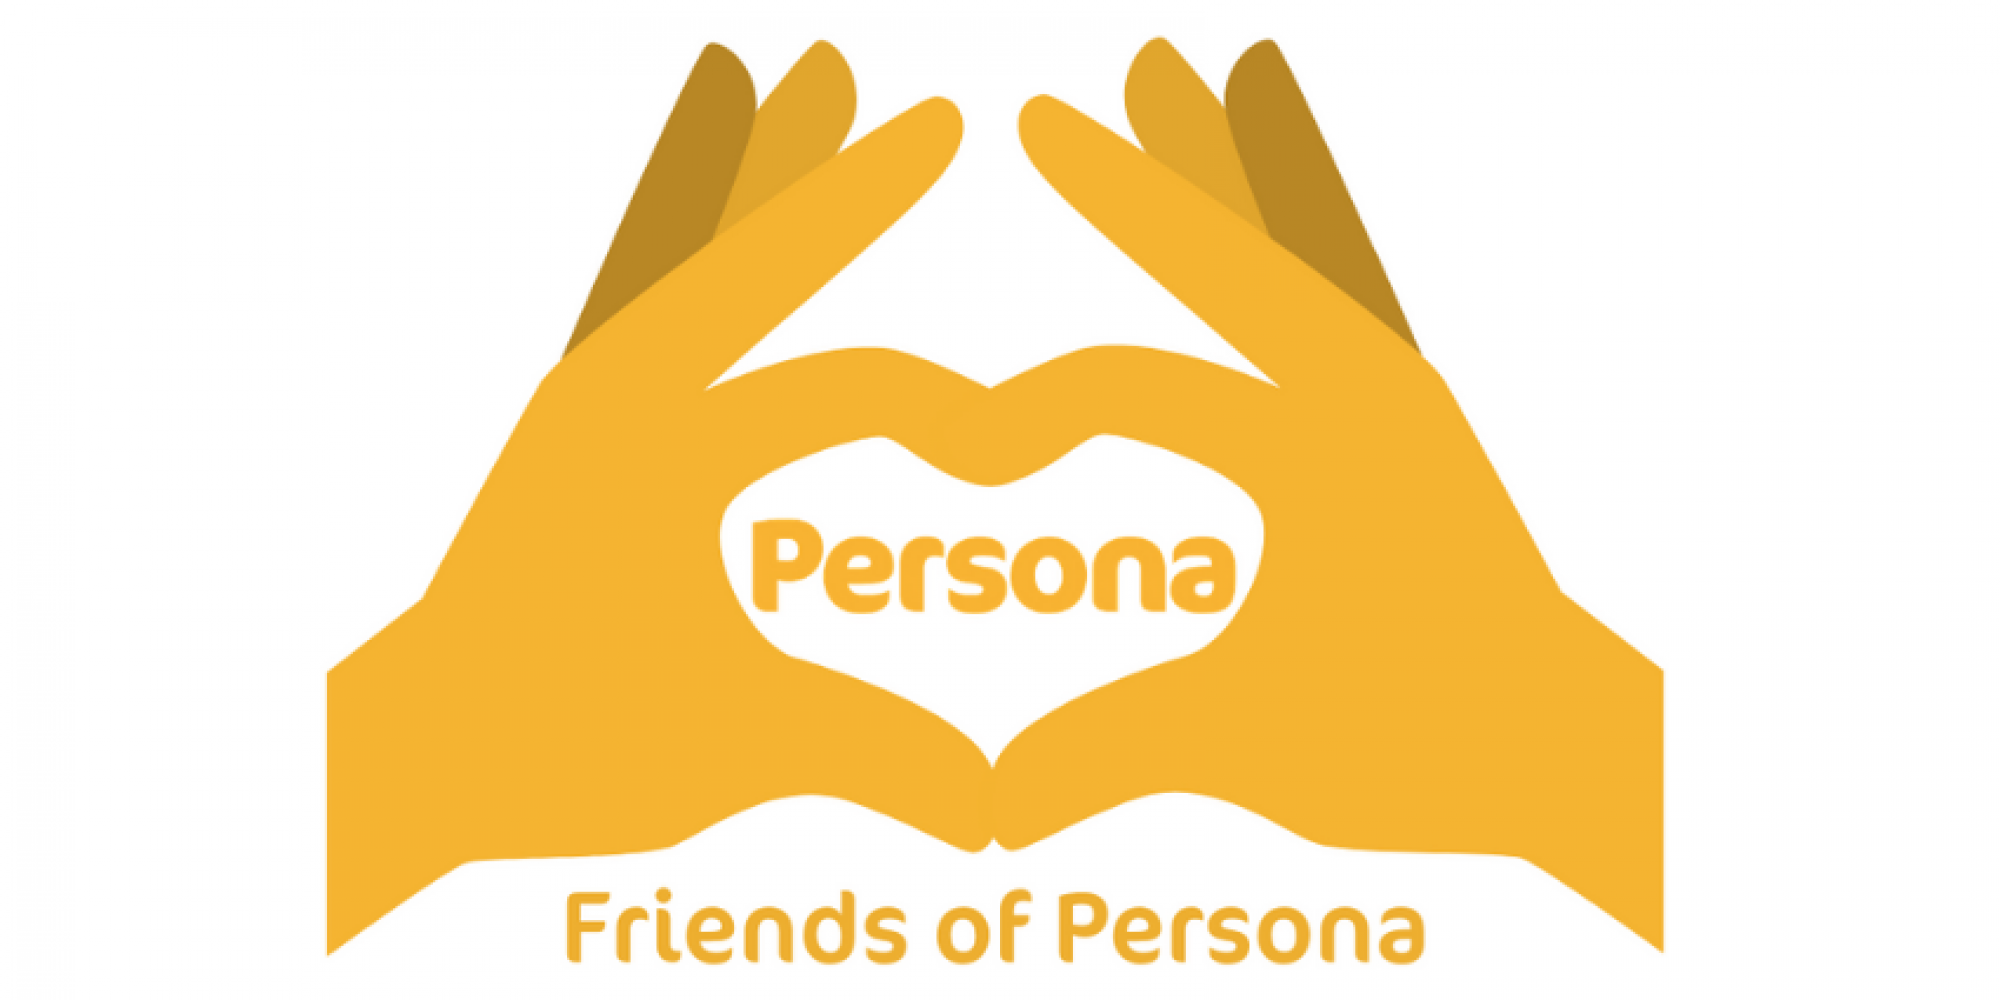 Friends of Persona